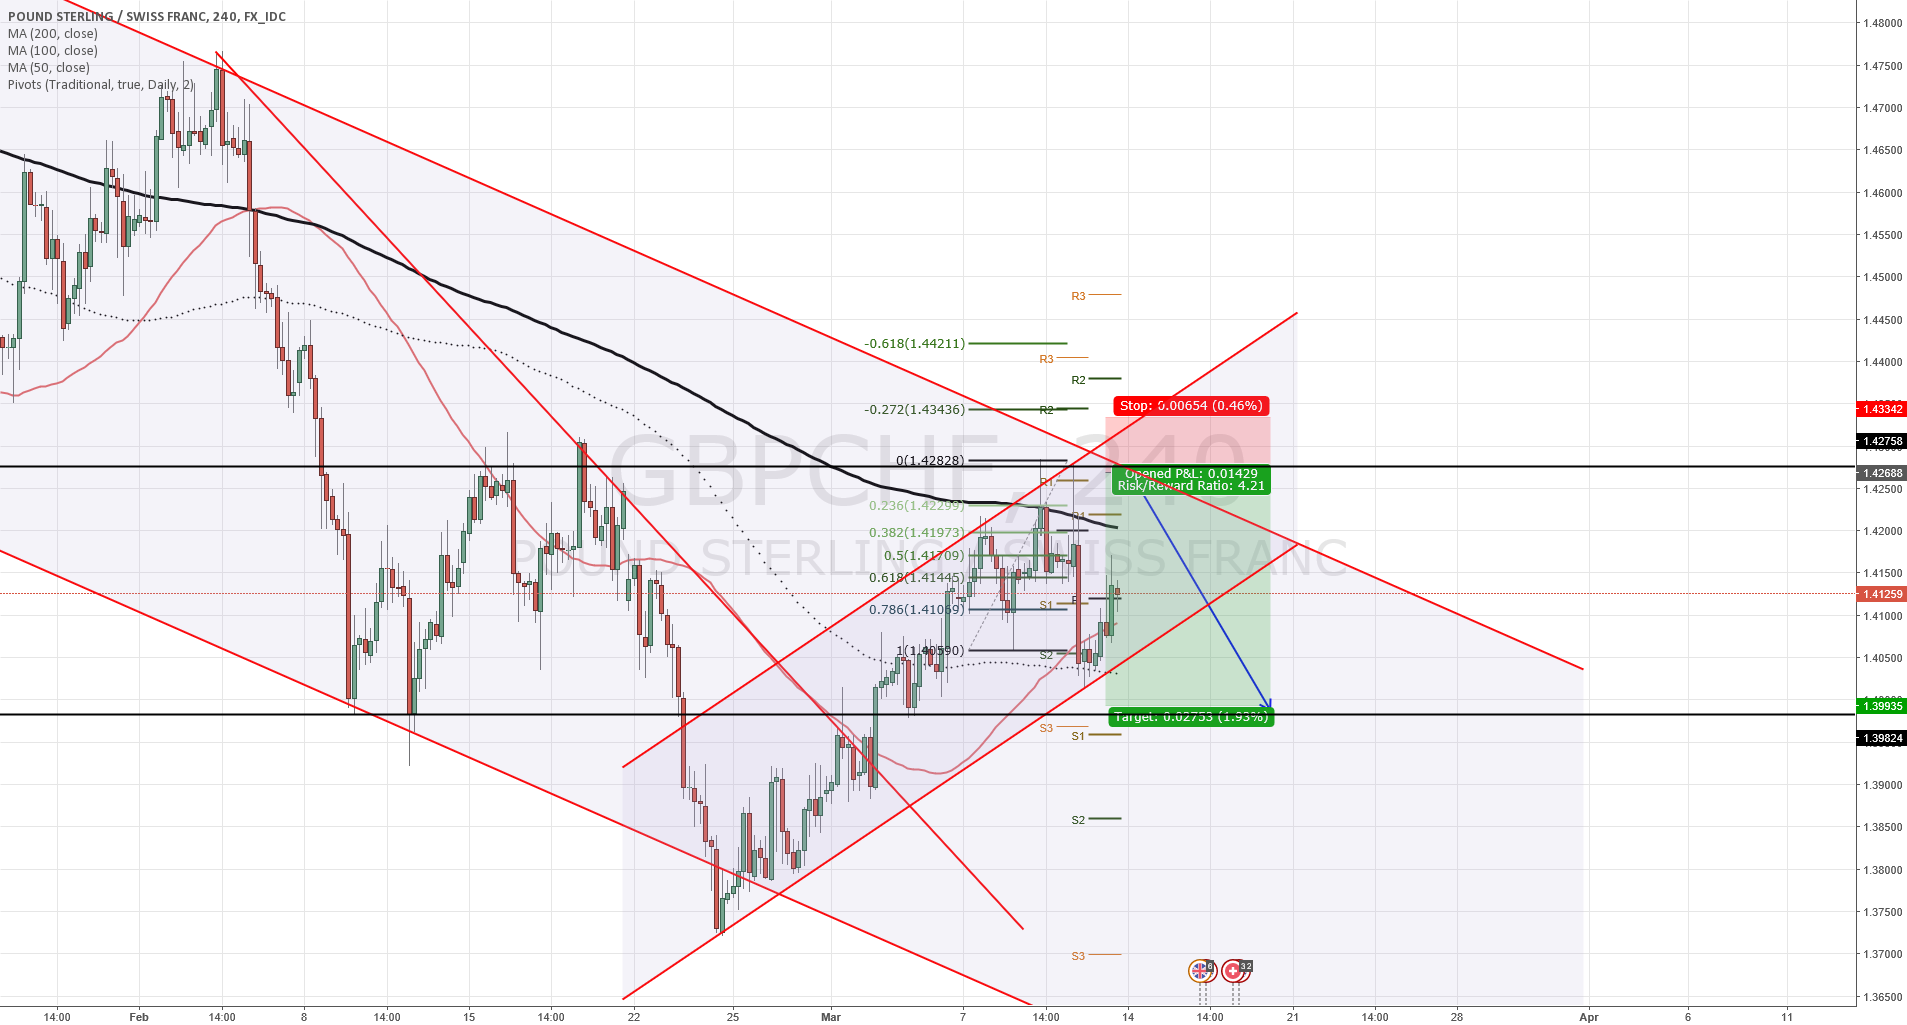 GBPCHF is going down, wait for it